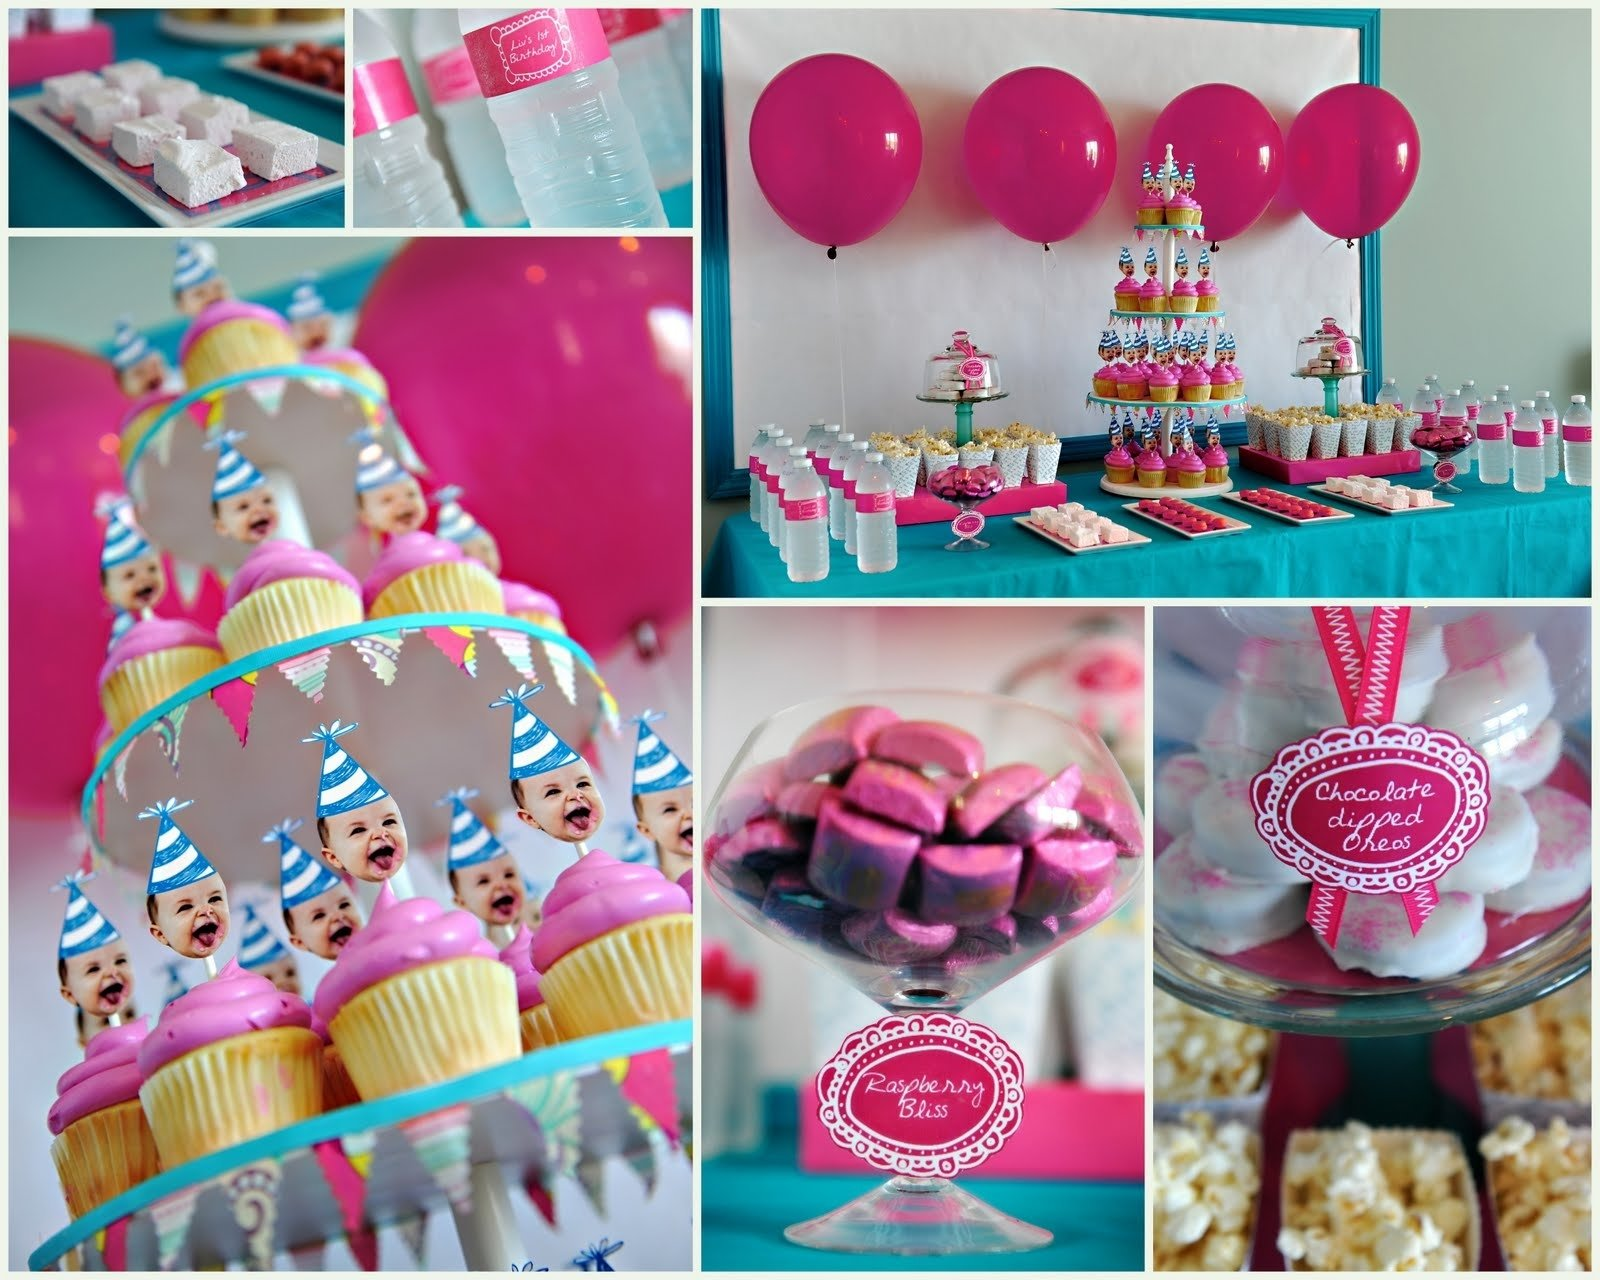 10 Best 7 Year Old Birthday Party Ideas elle belle creative one year old in a flash a first birthday party 11 2020